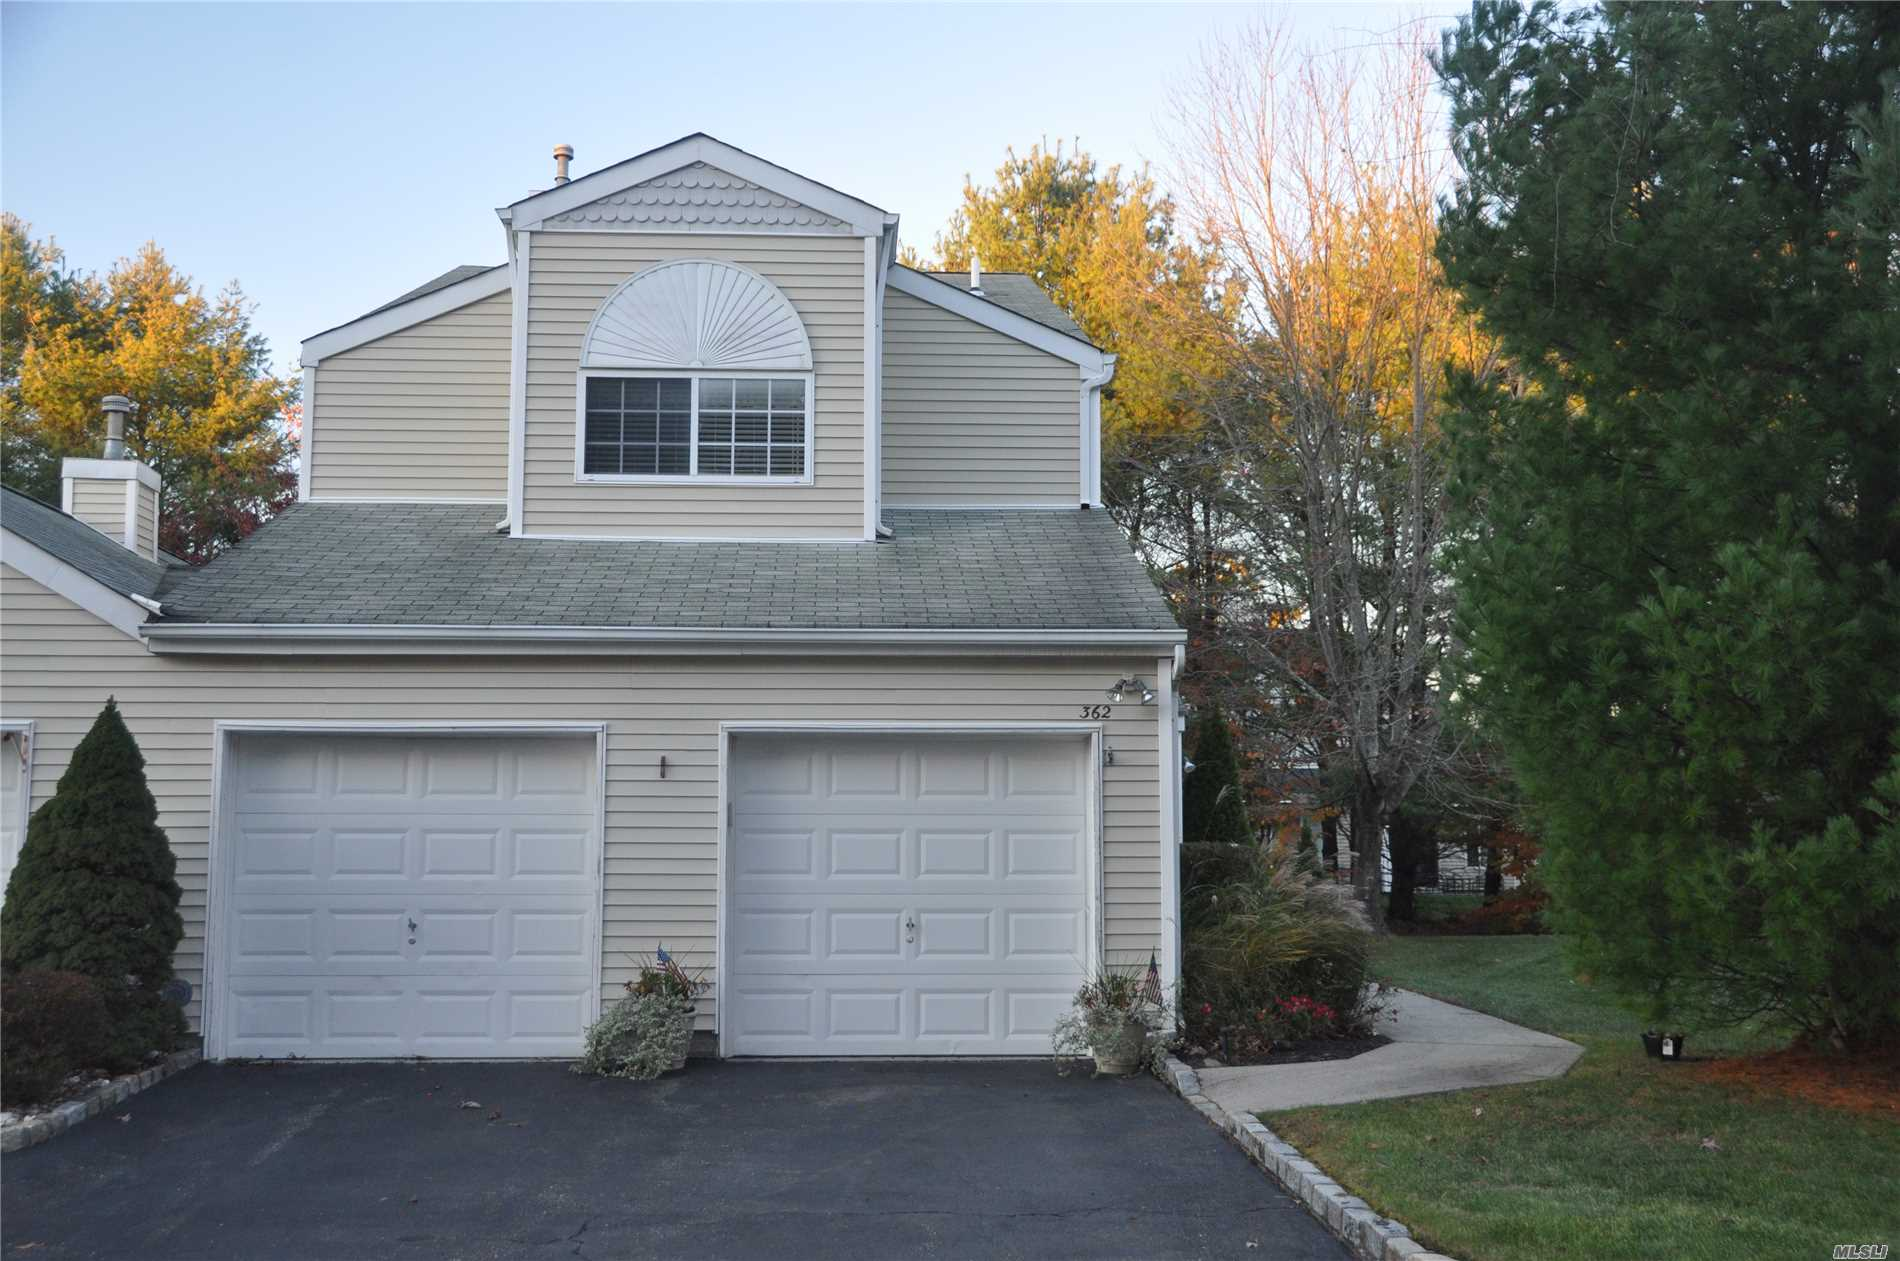 Property for sale at 362 Colonial Cir, Manorville,  NY 11949